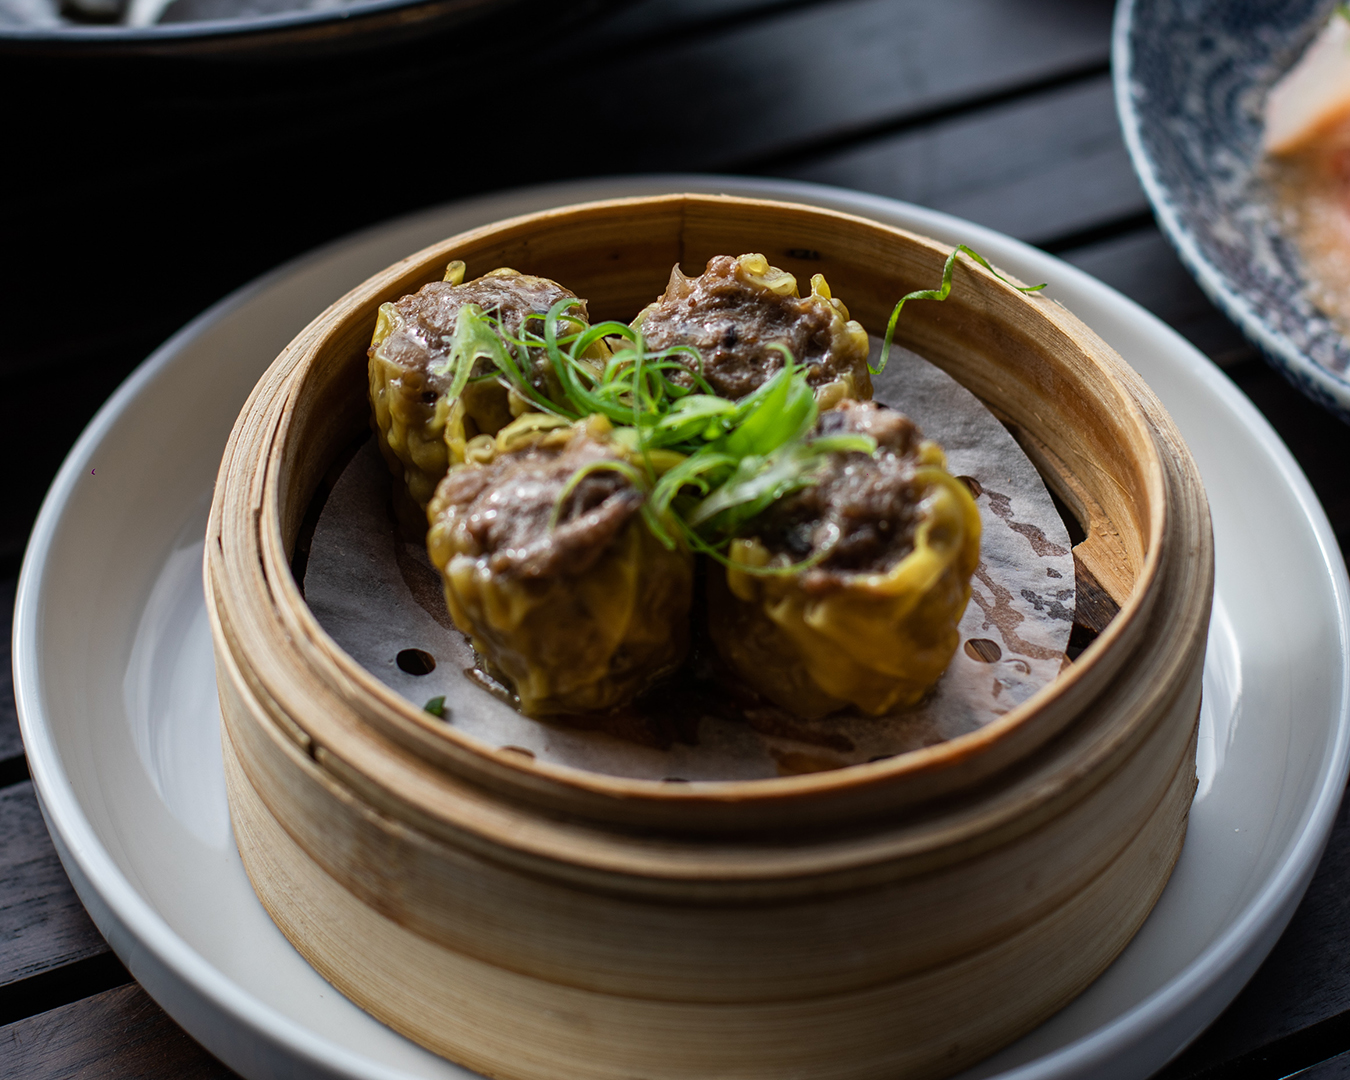 Dumplings From White And Wongs